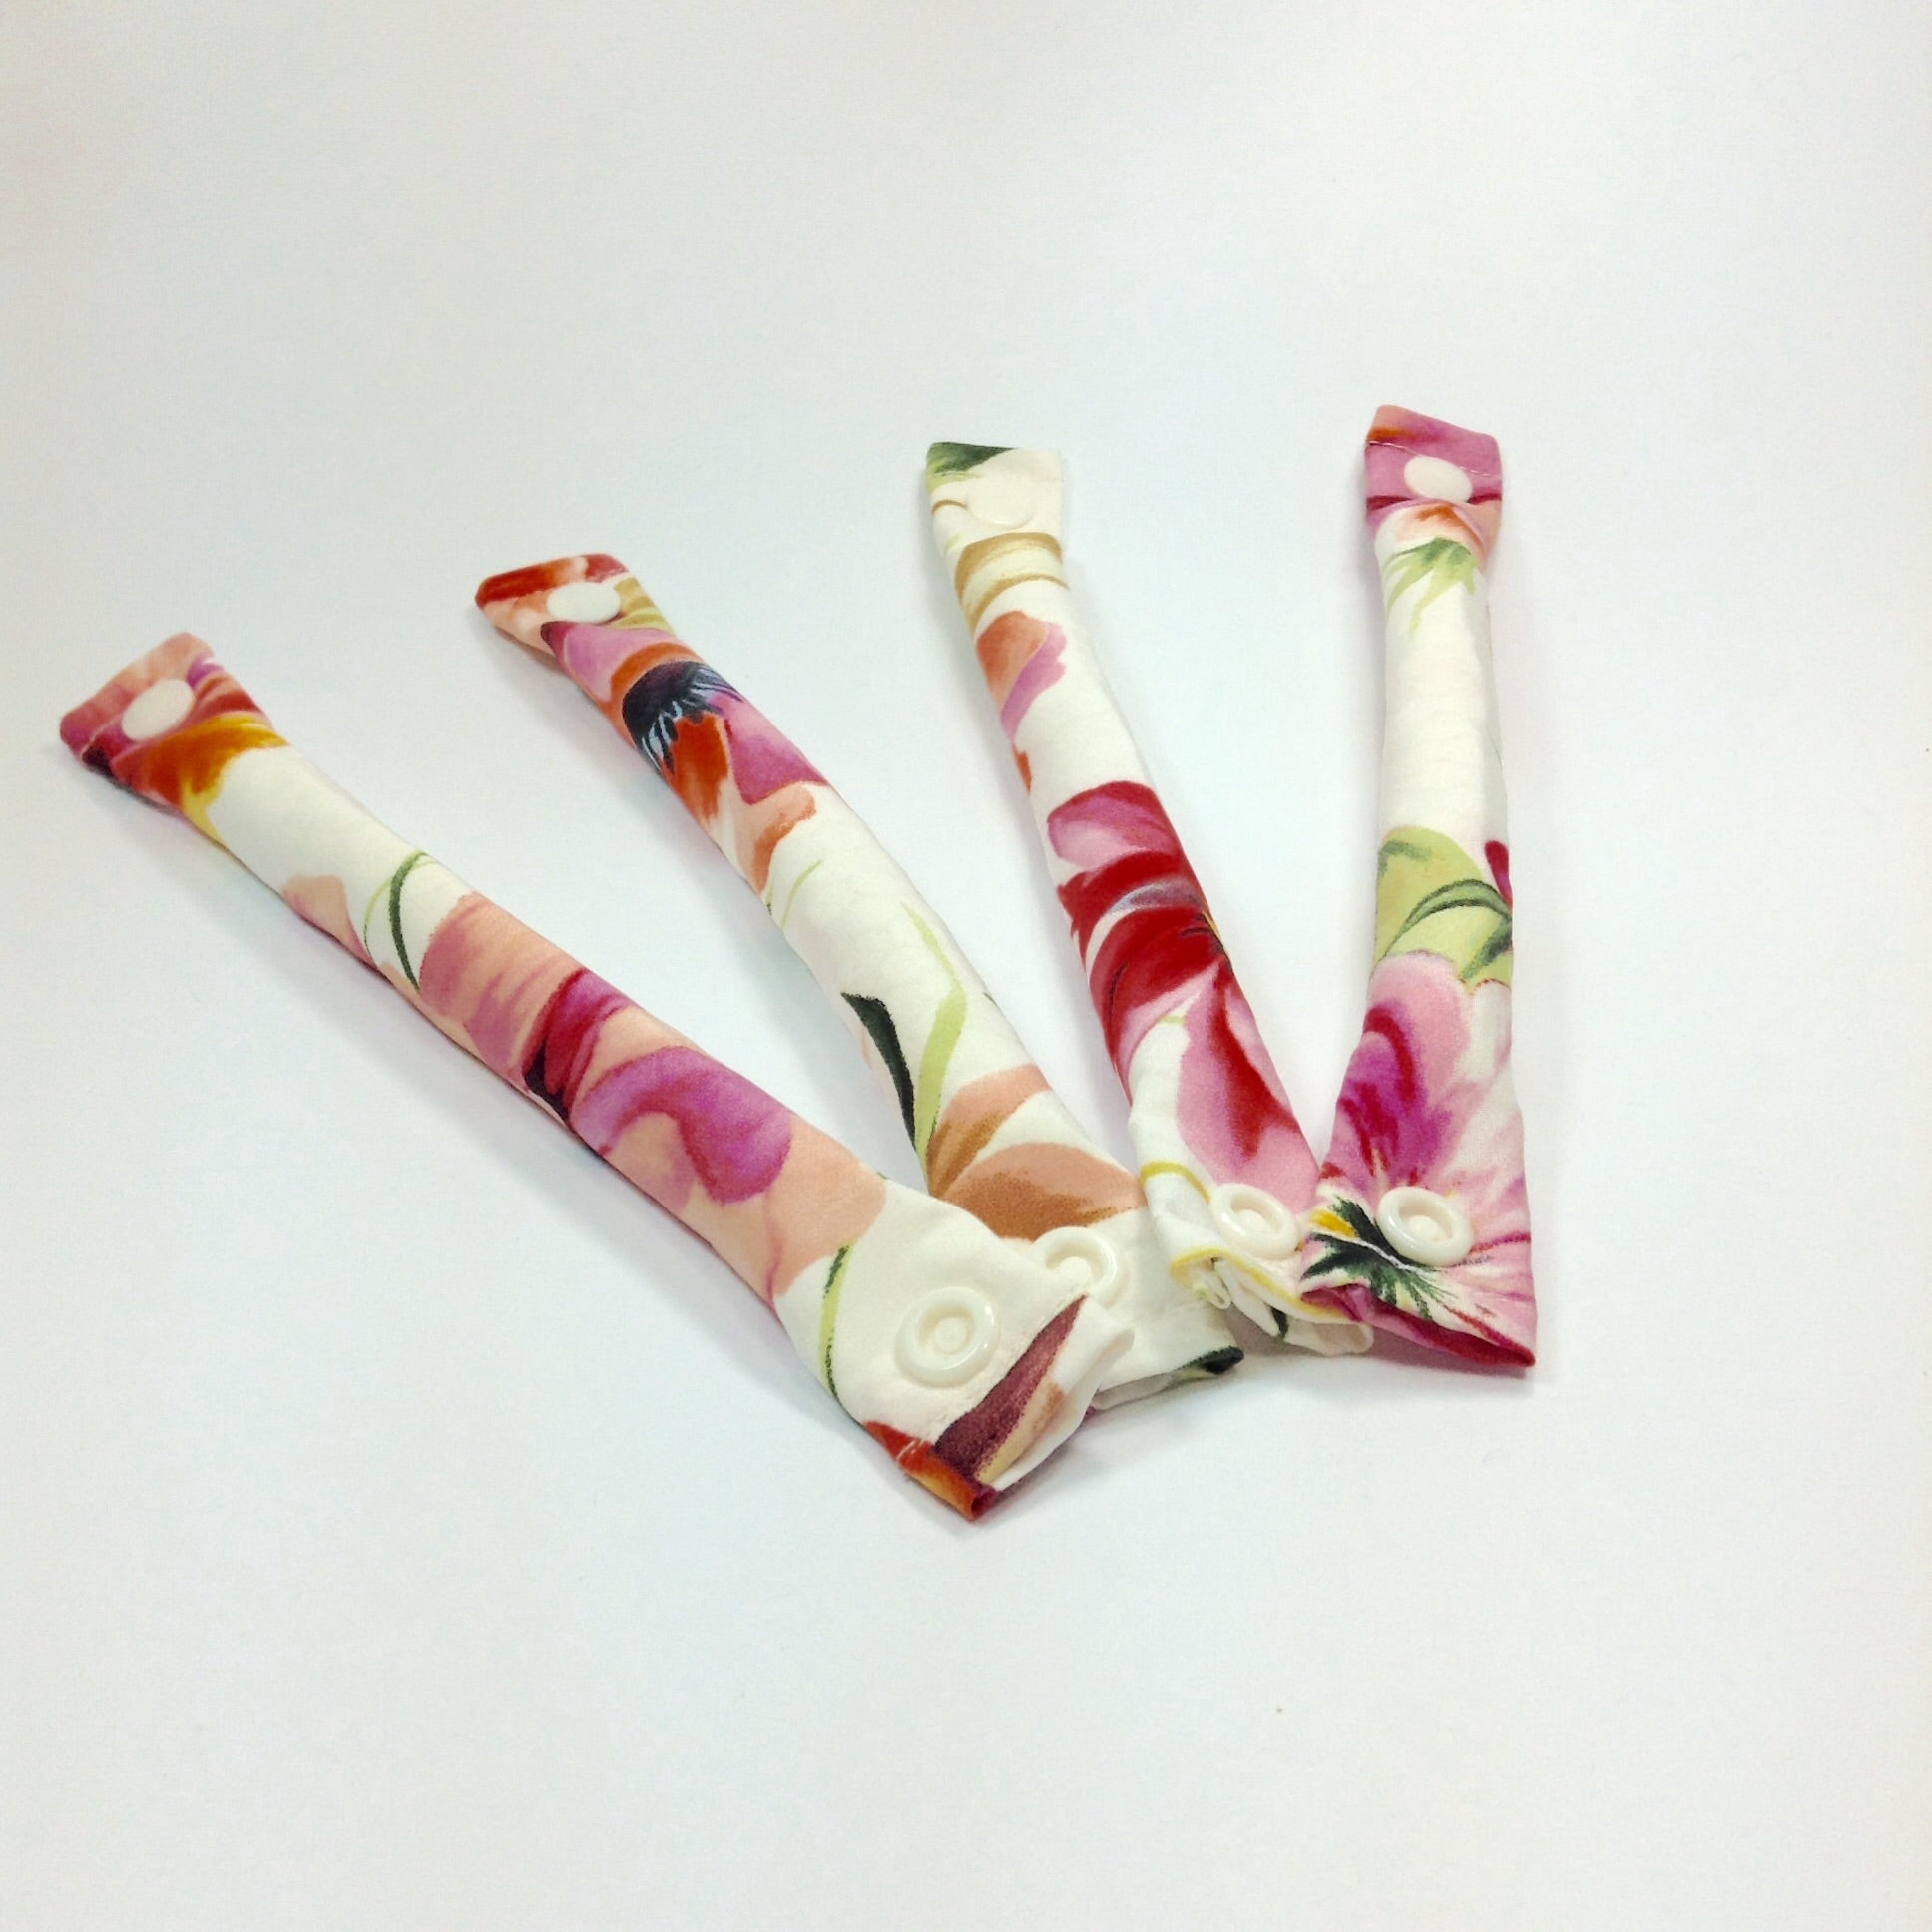 Ivory and floral Satin fabric hair rollers - Curlers - Hair Accessories set - My Easy Curls